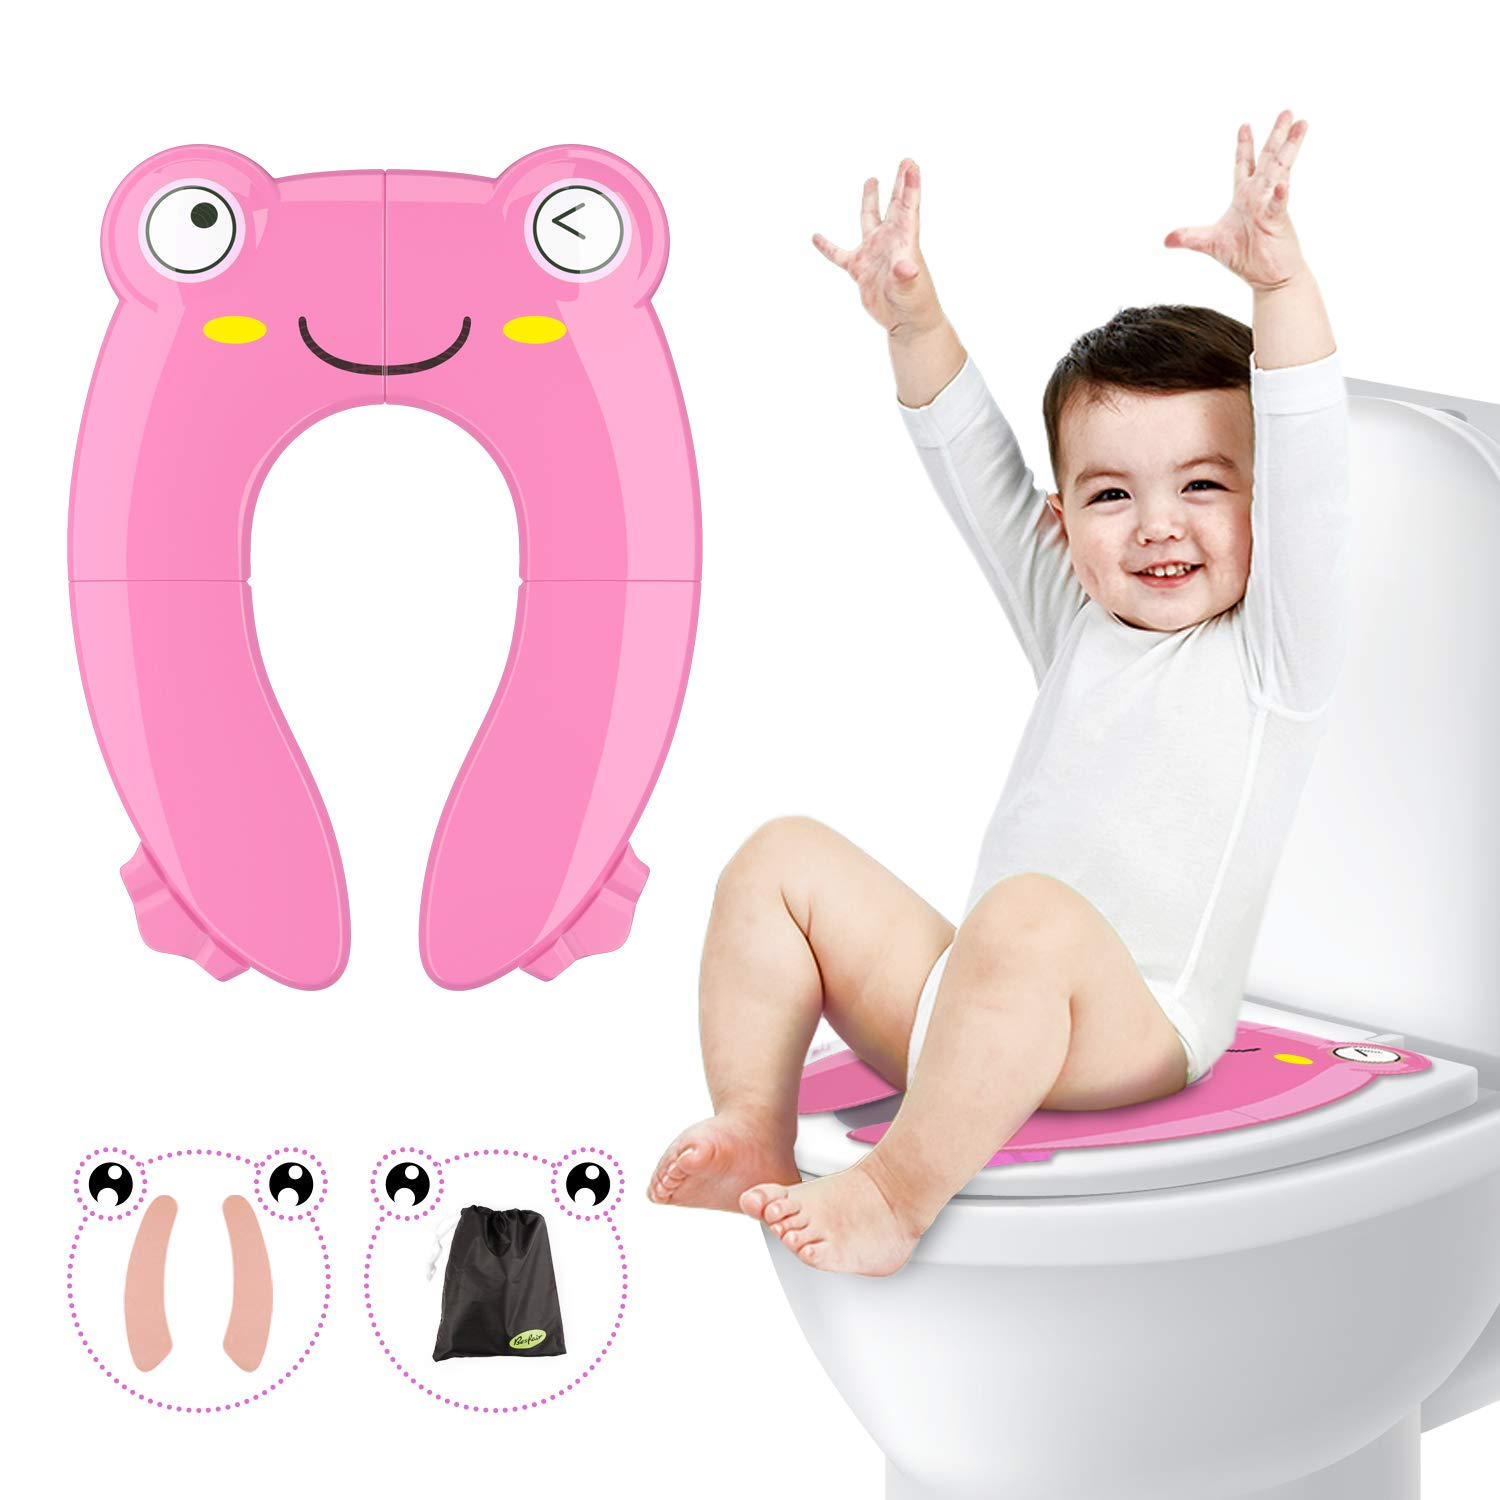 Fansteck Foldable Potty Training Seat, Portable Non-Slip Pinch-Proof Travel Potty Toilet Seat for Boys, Girls, Babies, Toddlers, Kids, with Extra Soft Reusable Mats and Carry Bag, Frog Shape,Pink